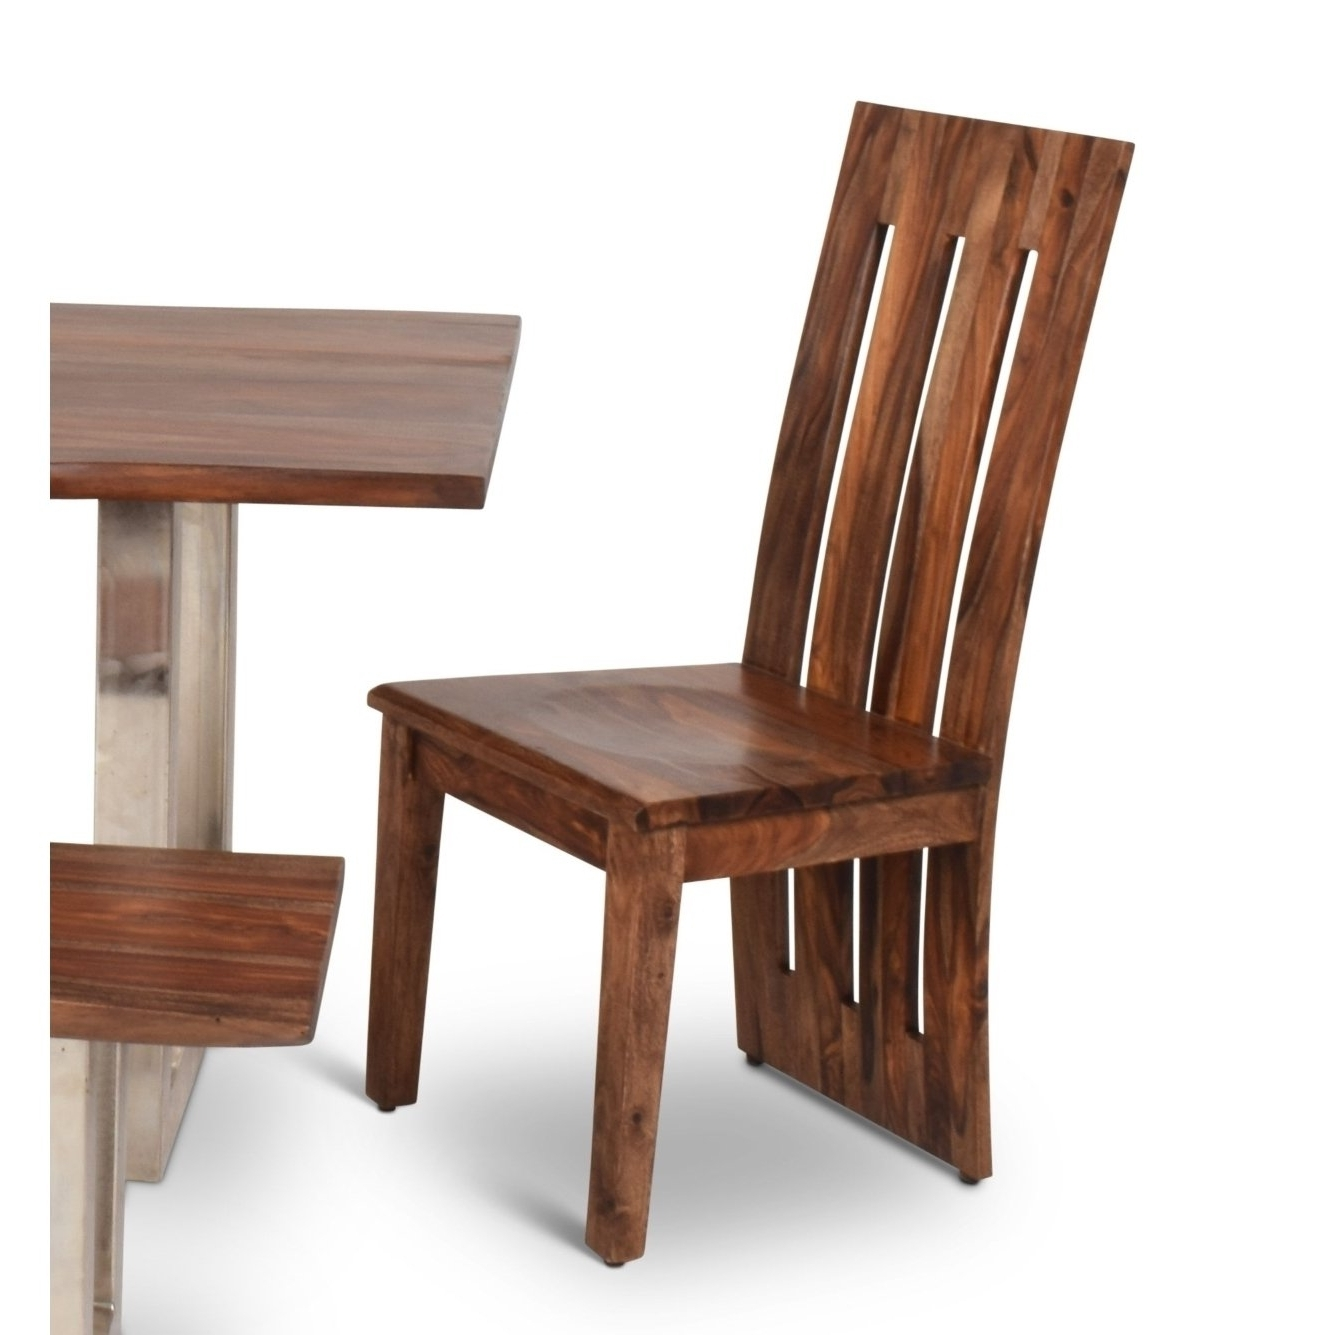 2018 Sheesham Wood Dining Chairs Pertaining To Shop Rania Sheesham Wood Dining Chairs (Set Of 2)Greyson Living (View 2 of 25)